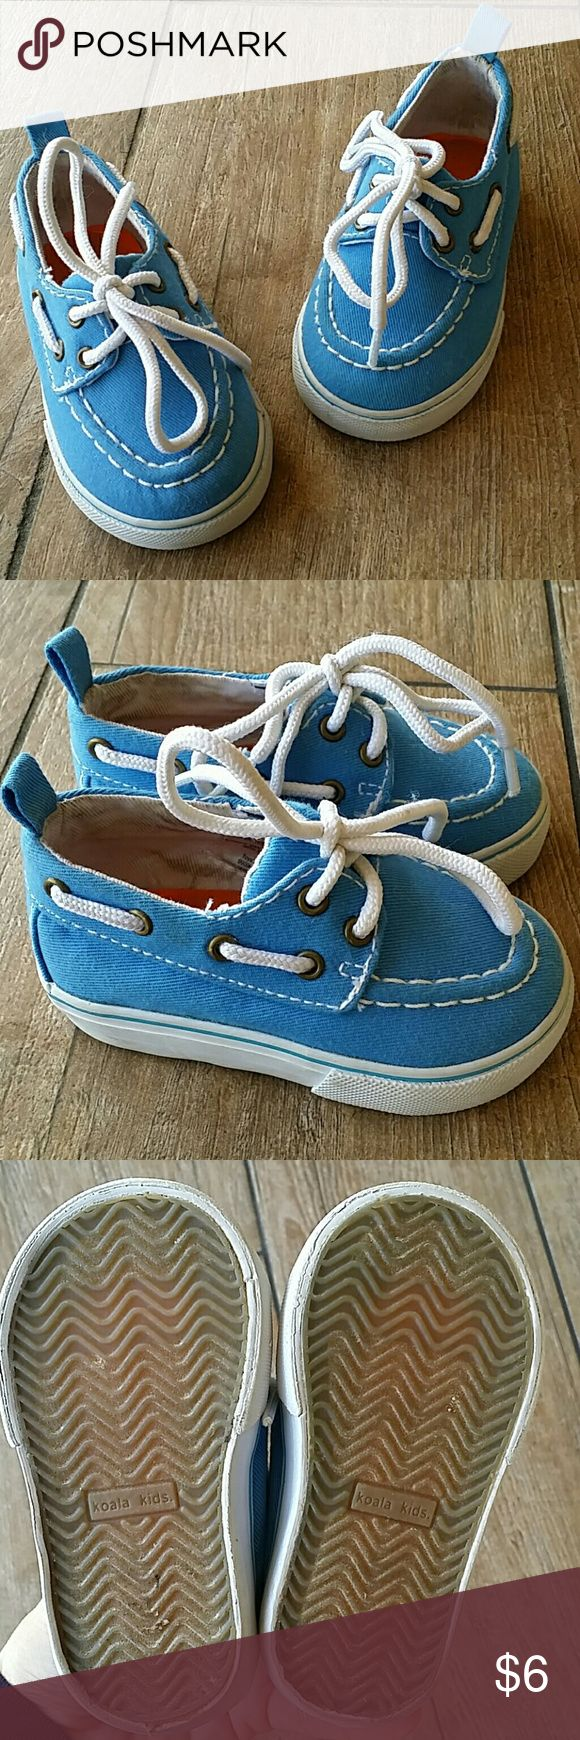 LIGHT BLUE BOAT SHOES Light blue with white laces Pull tab on back to get on I don't think he ever wore them, bottoms look brand new. Inside wear could be inside trying on Smoke few home Koala Kids Shoes